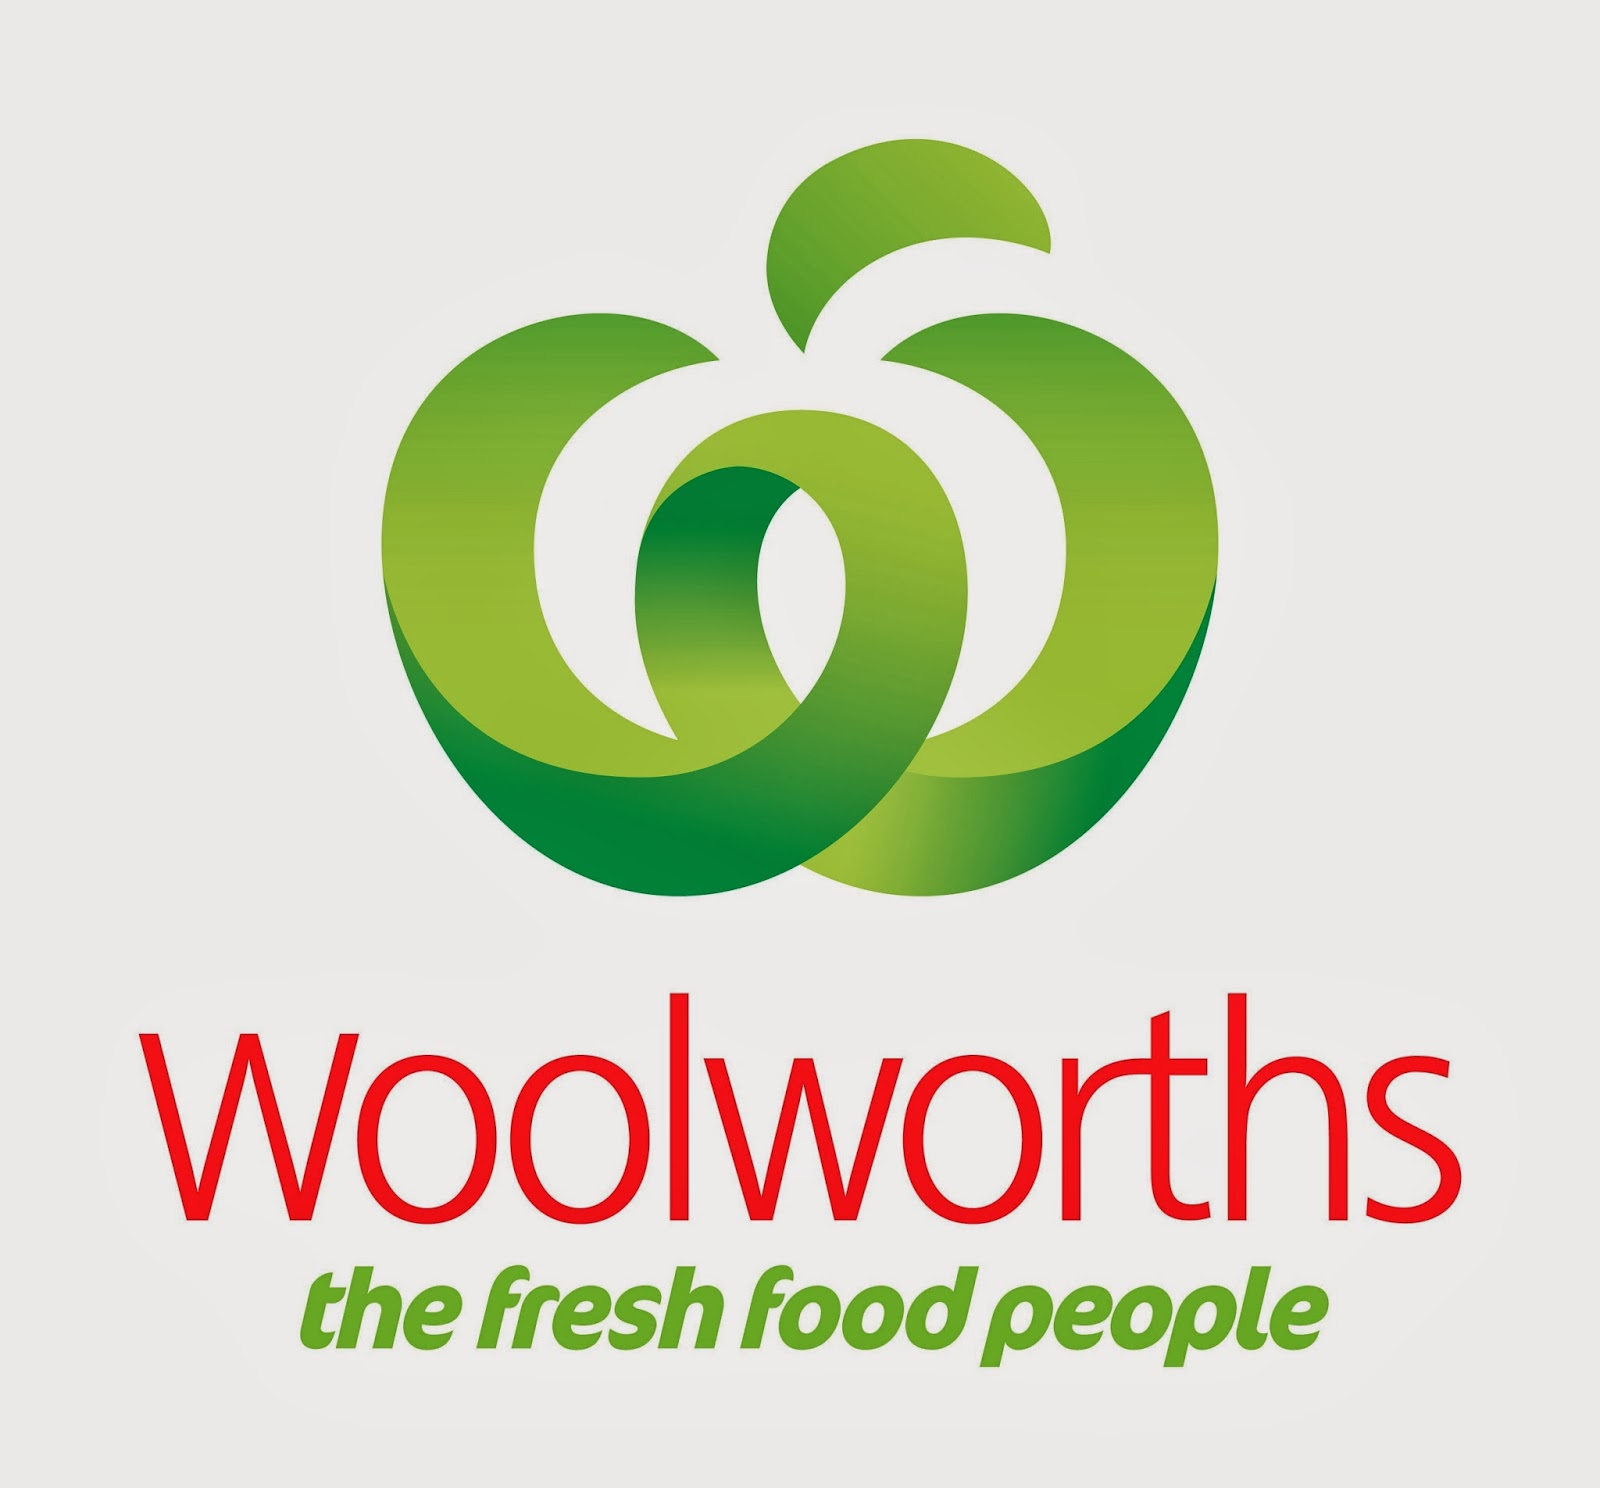 woolworths vs coles U1 decided to test the coles and woolworths online grocery shopping sites with  real users and compare their usability.